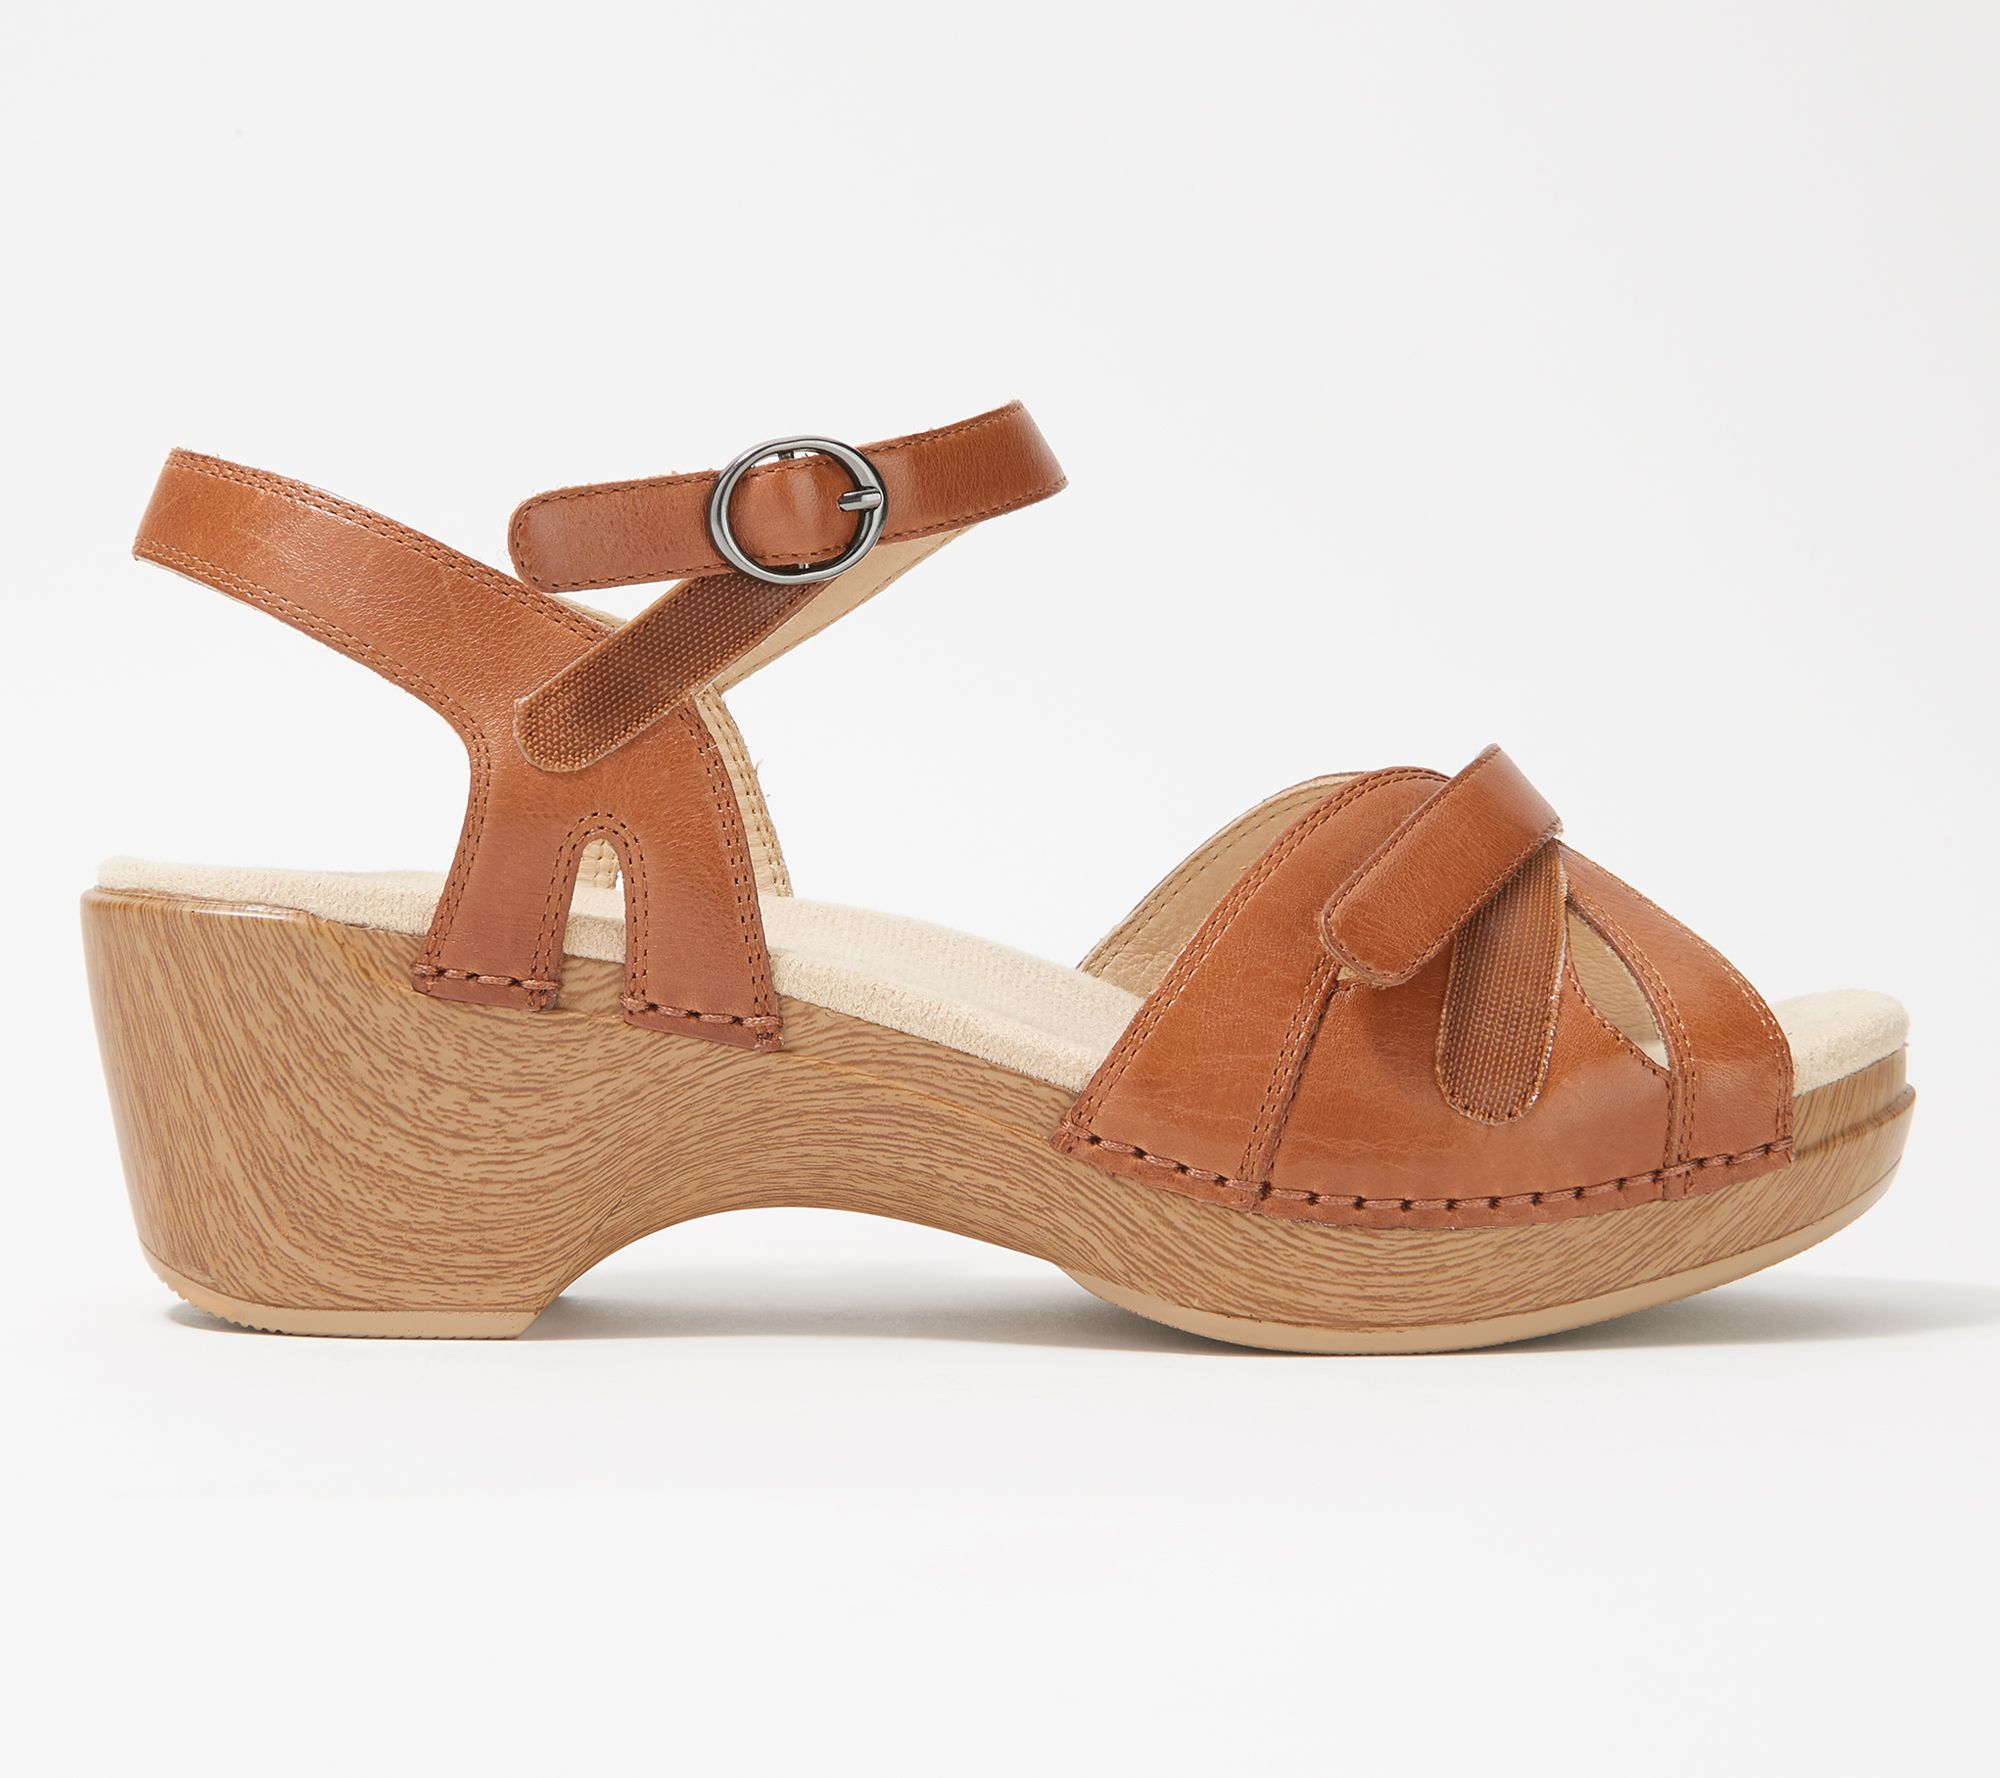 71dfbca65a0b Dansko Leather Adjustable Sandals - Season - Page 1 — QVC.com